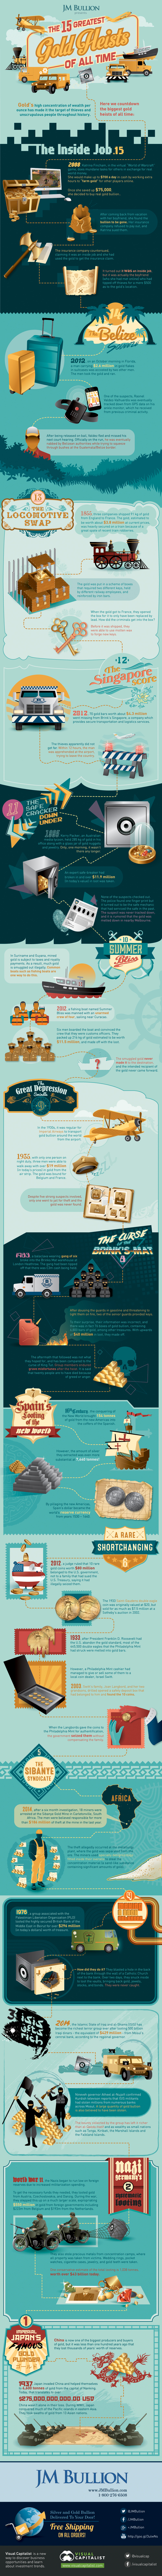 the-15-greatest-gold-heists-infographic